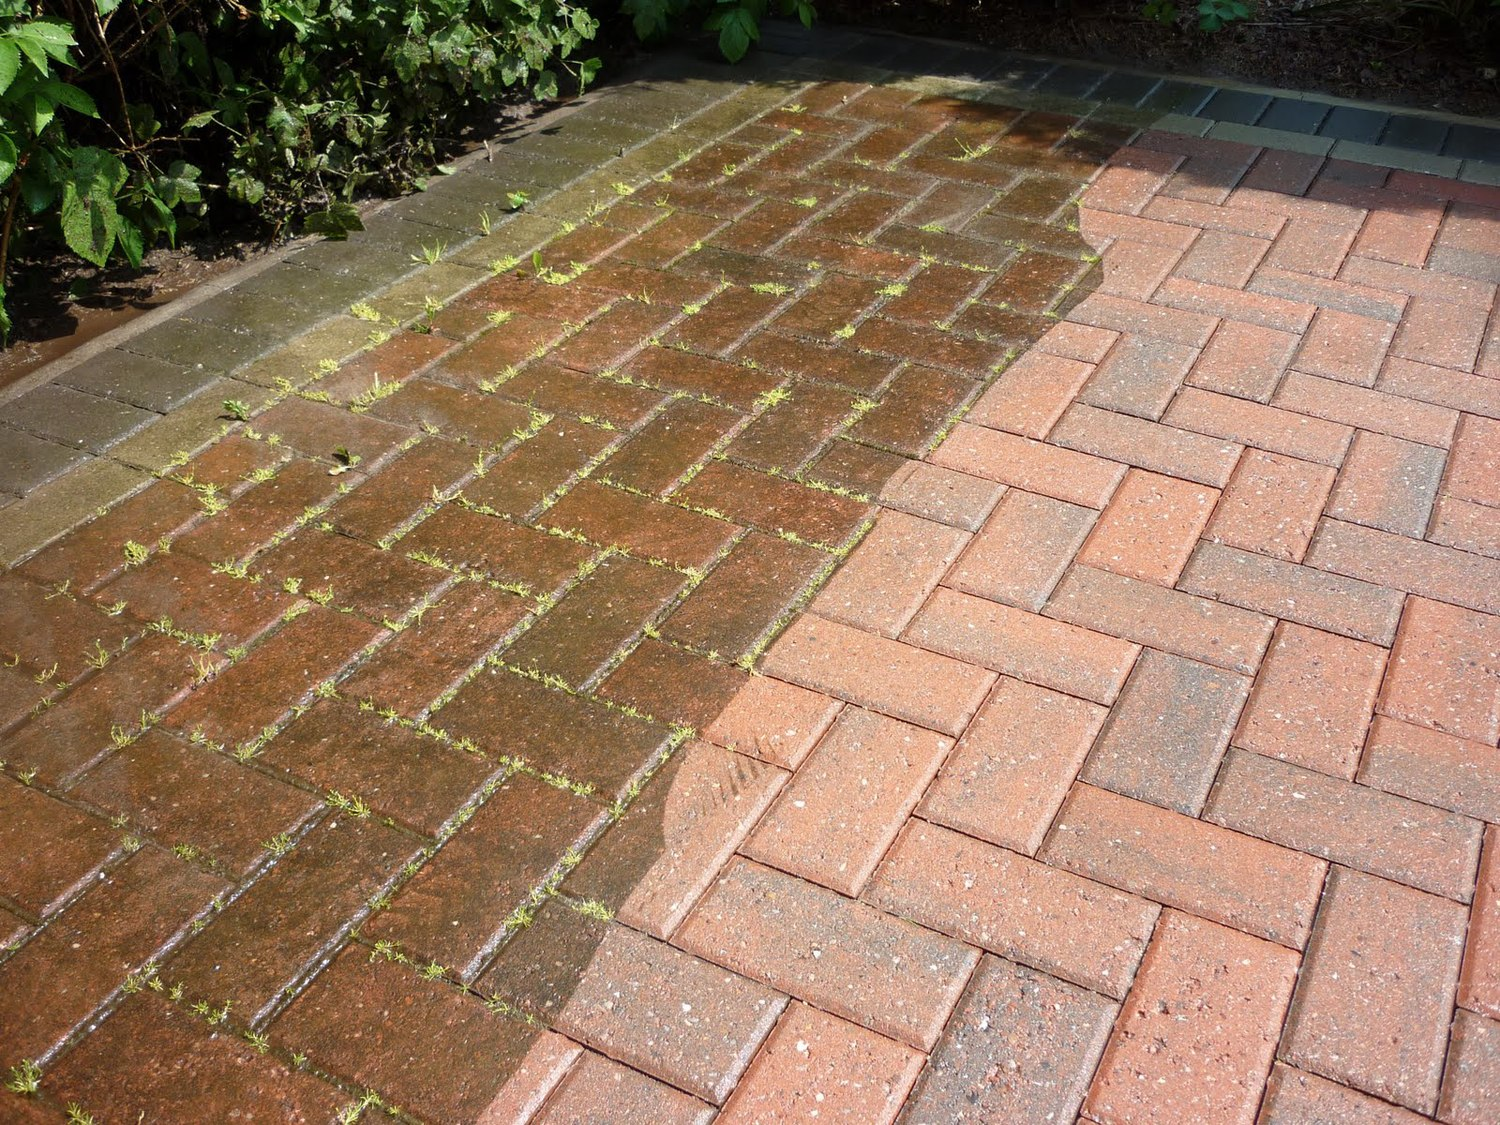 Power Washing Walkways and Masonry